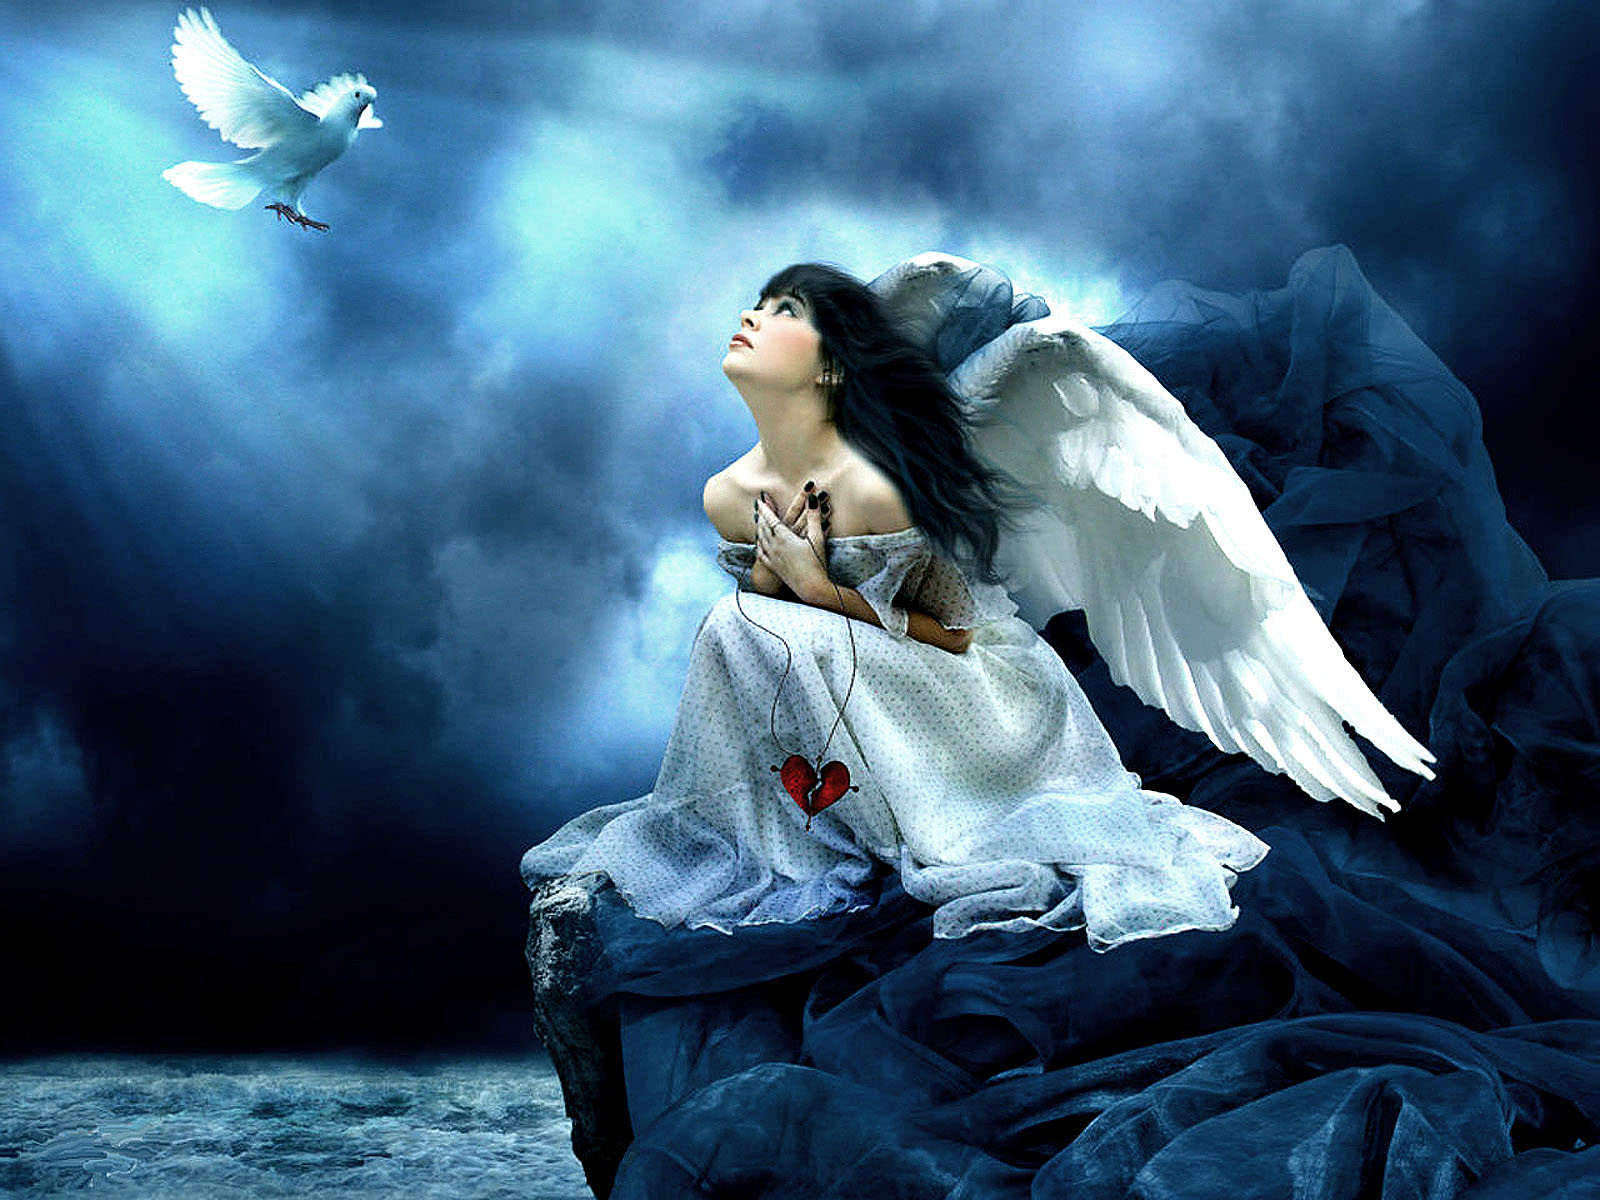 Best Wallpapers Collection: Best Angel Wallpapers